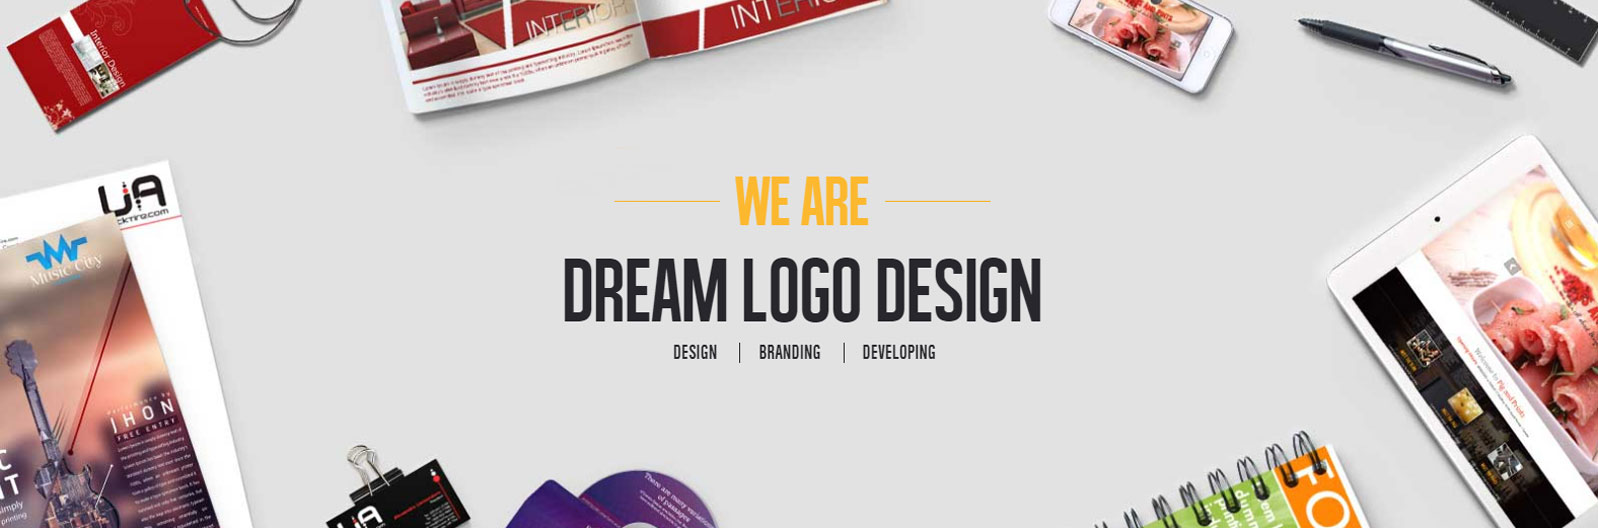 David Martin Realtor Landscaping Logo Design – DreamLogoDesign